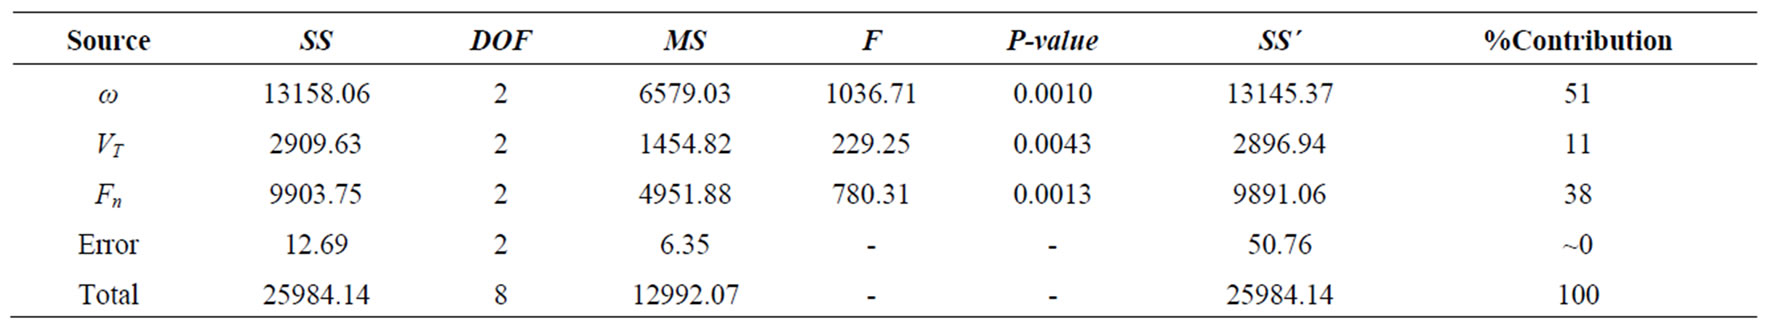 Taguchi optimization of process parameters in friction for F table 95 confidence